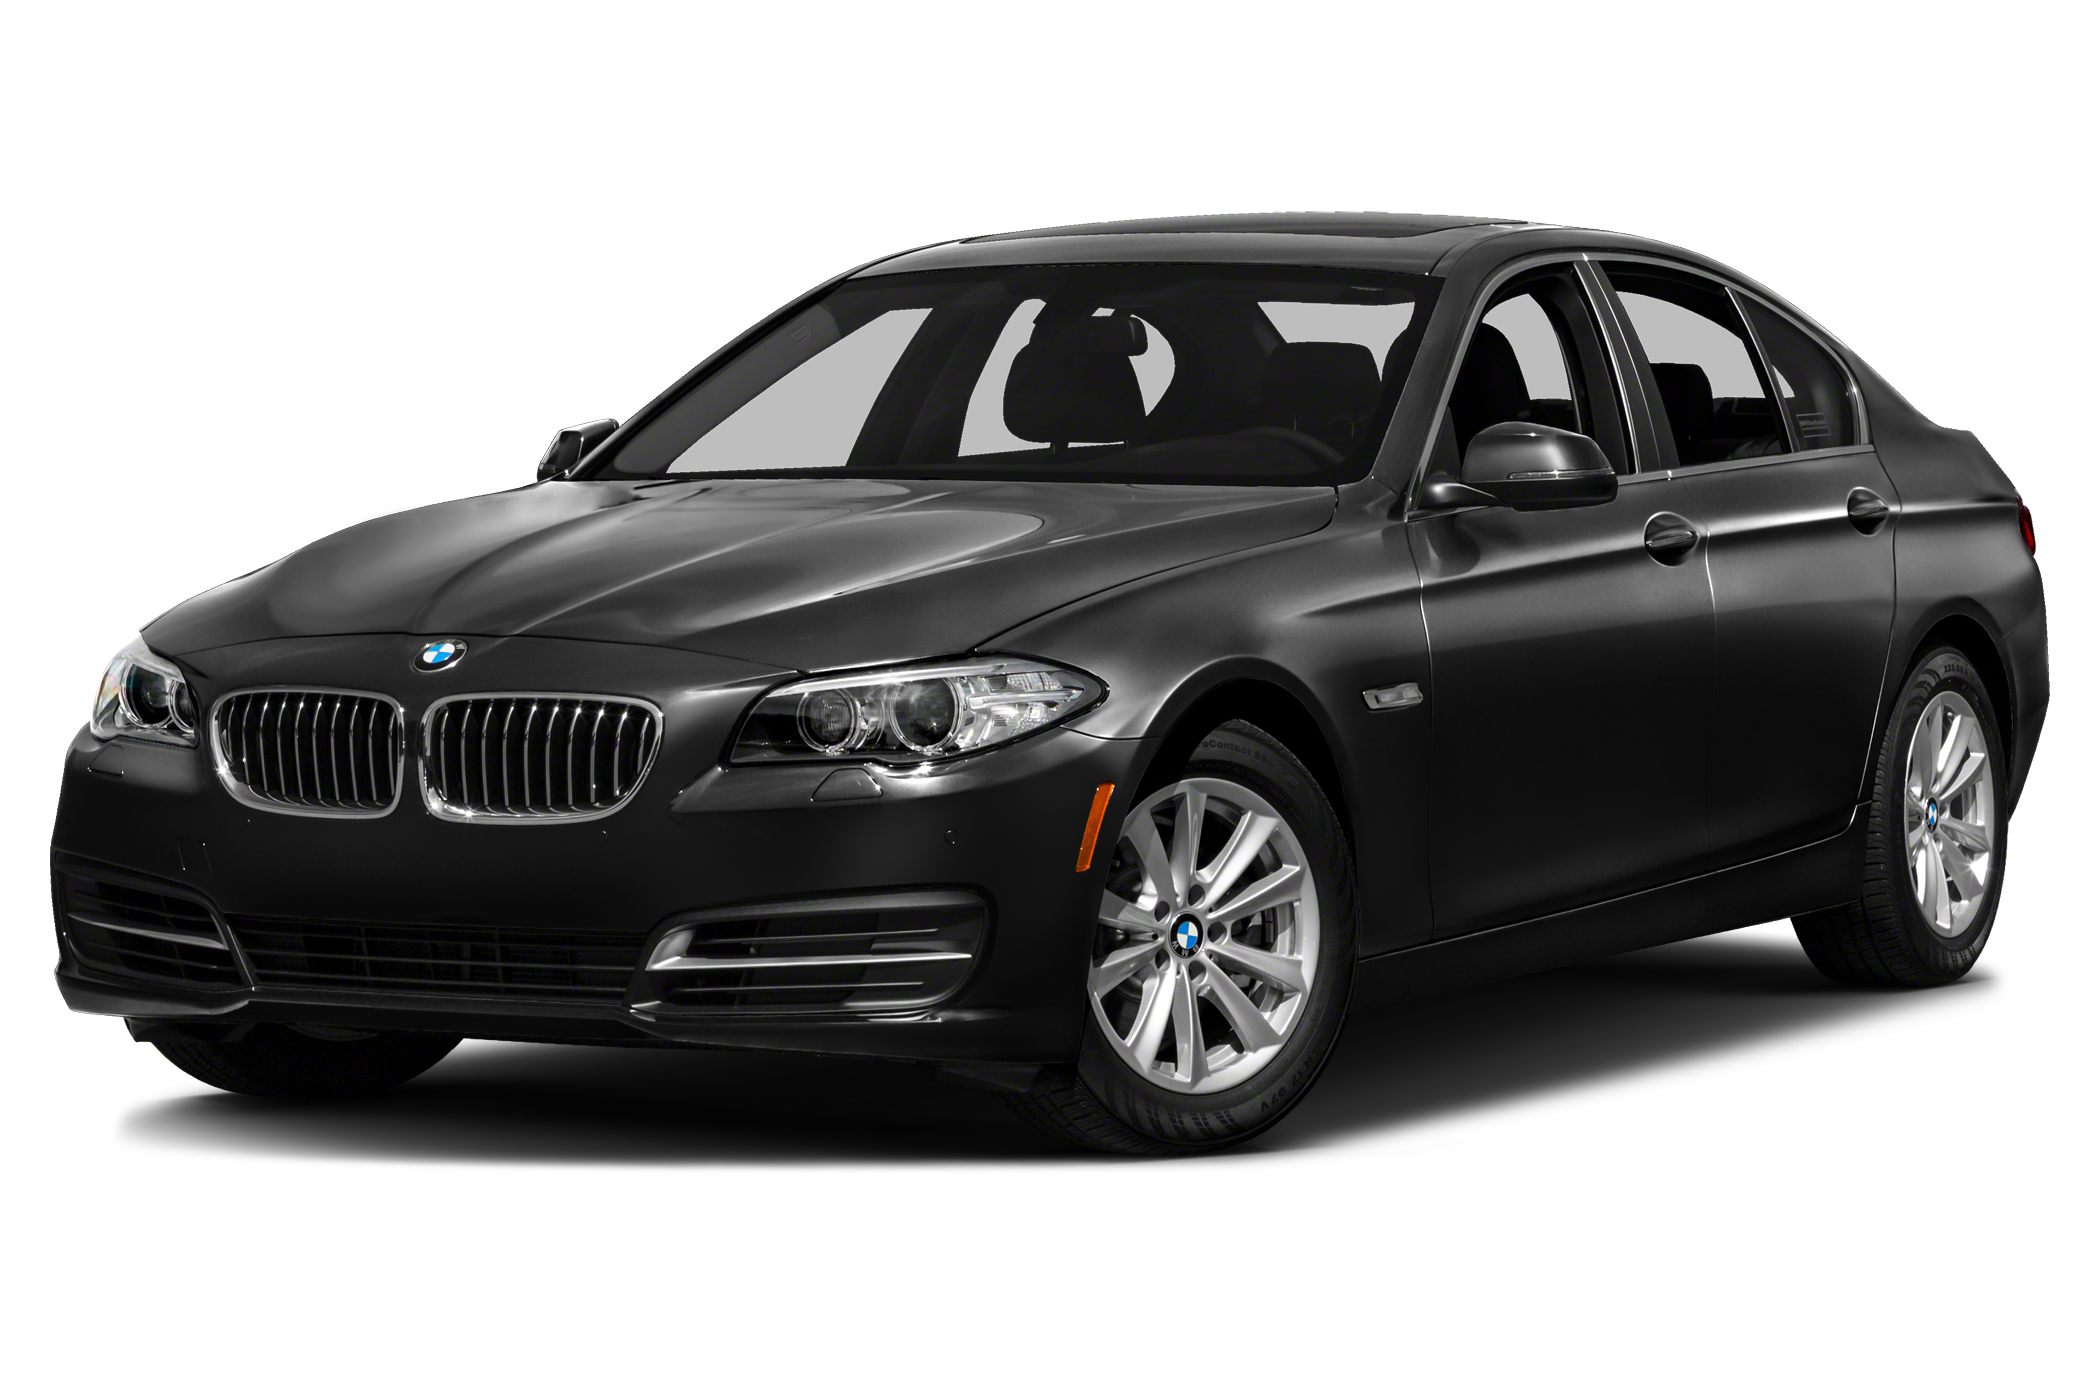 2014 BMW 5 Series 528i PREMIUM PACKAGE WITH NAVIGATION BACKUP CAMERA HEATED SEATS UPGRADED LIGHT